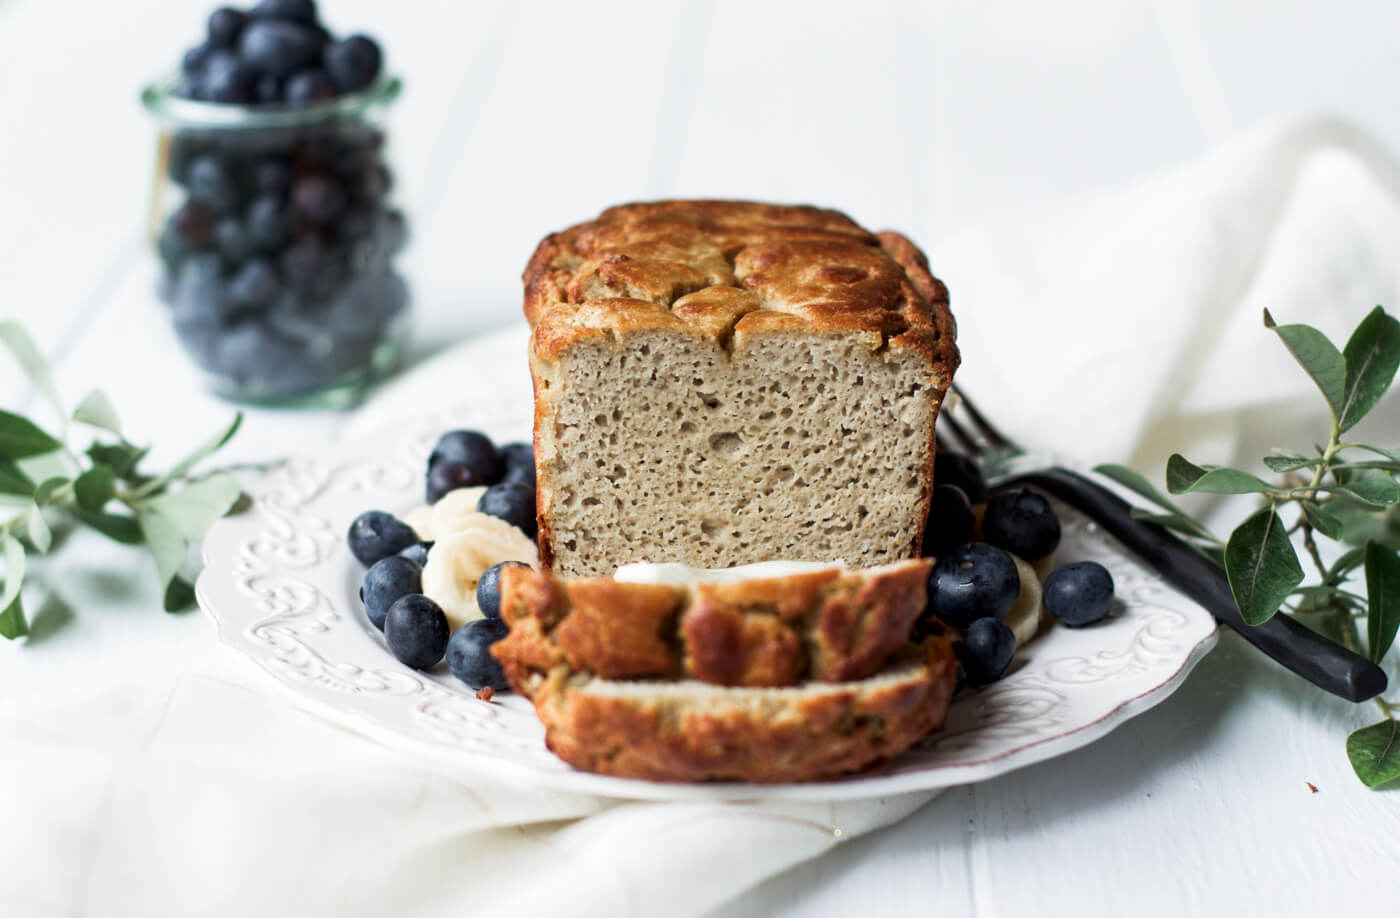 5 minute paleo banana bread paleo gluten free eats this grain free paleo banana bread is incredibly easy to make and its made in forumfinder Gallery